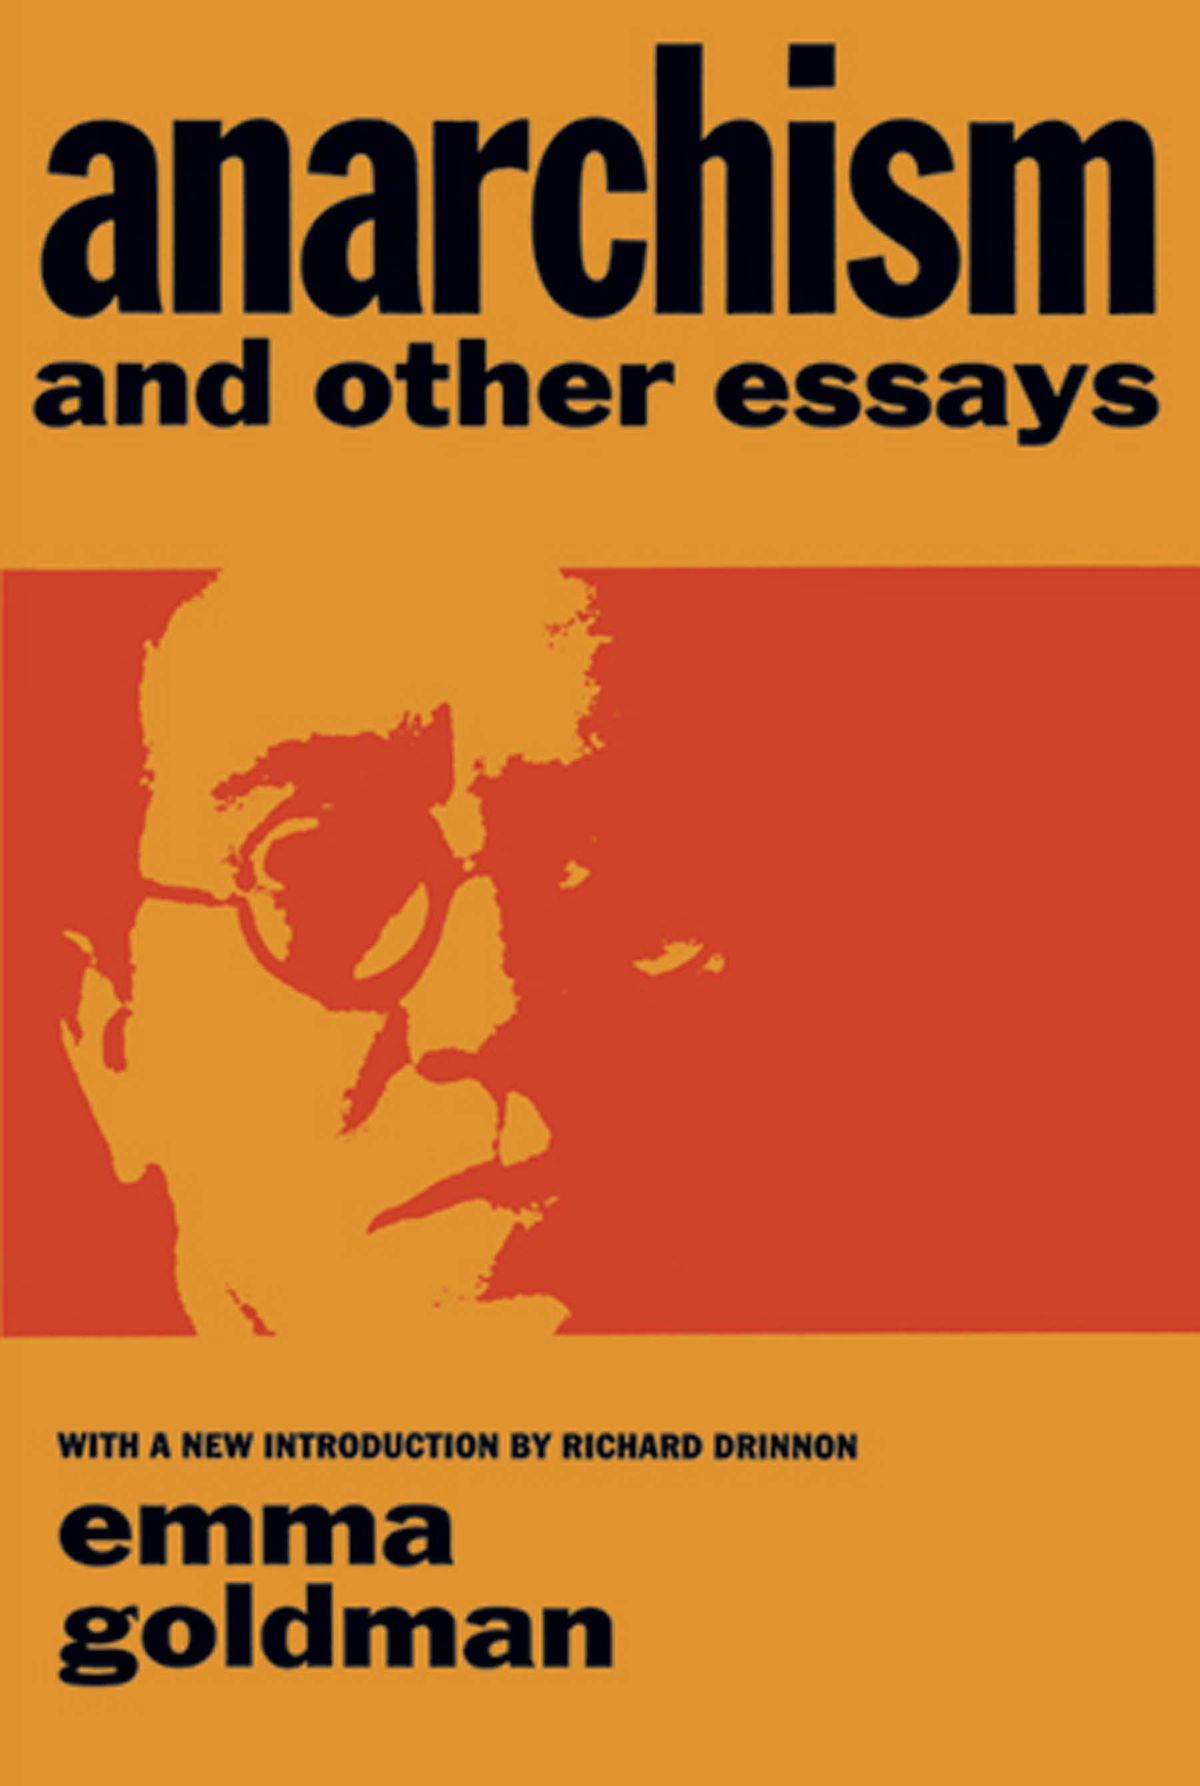 001 Essay Example Anarchism And Other Essays Incredible Emma Goldman Summary Pdf Full